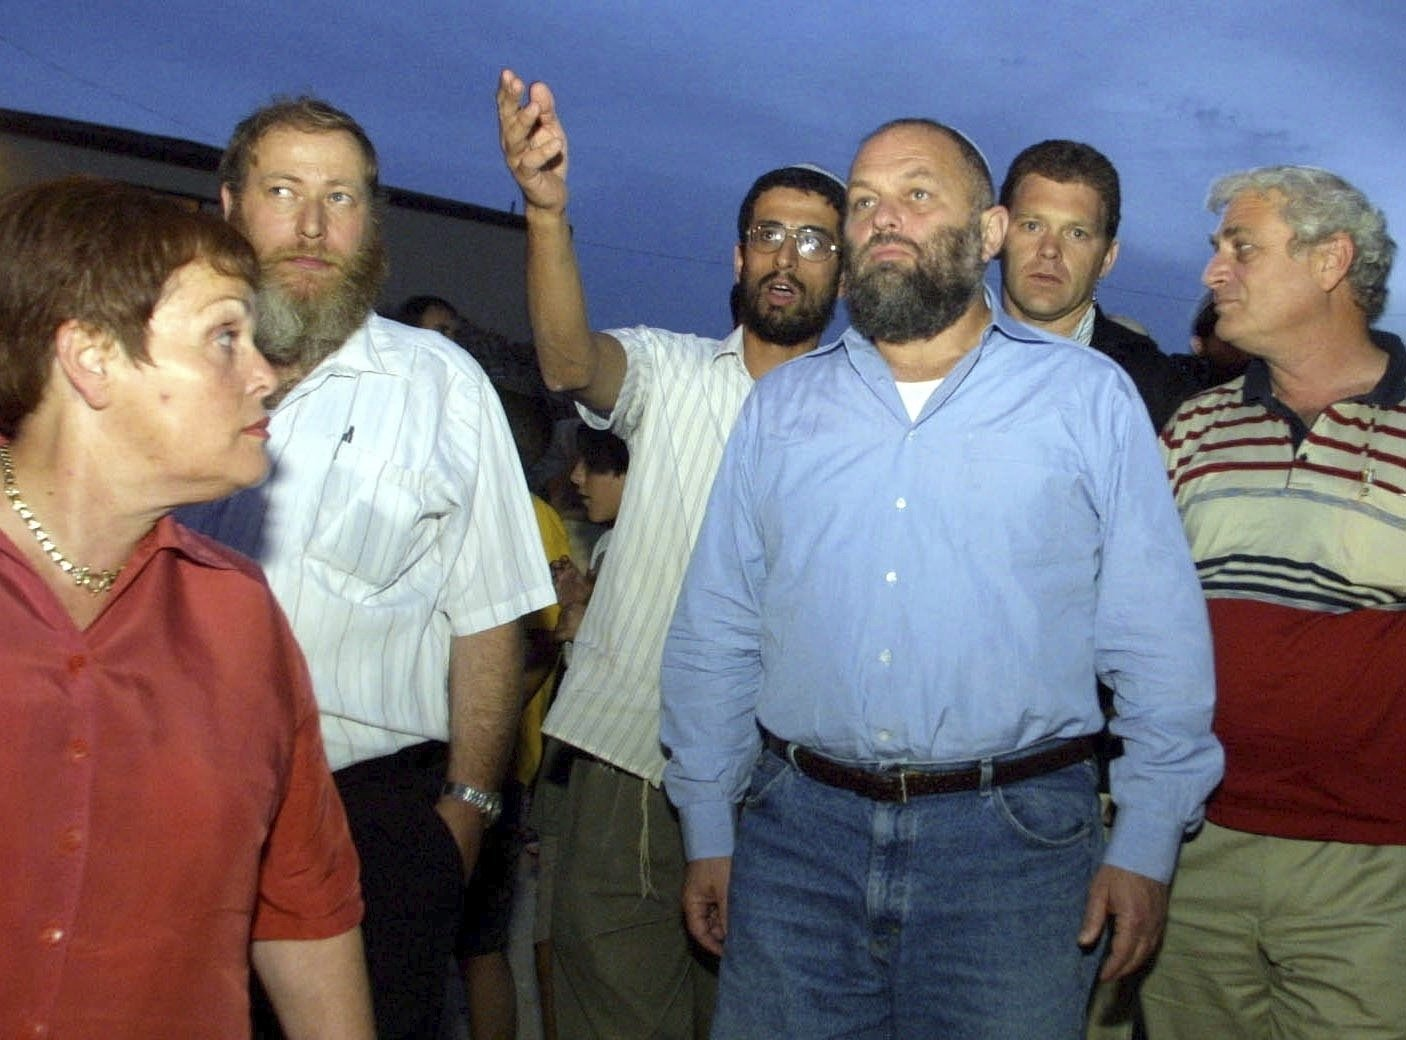 In this Oct. 13, 2002 file photo, Israel's then-Infrastructure Minister Effie Eitam (C) listens to Jewish settlers when visiting Mitzpeh Assaf, an illegal outpost which Israel's Defense Minister said will be dismantled, near the settlement of Ofra, north of Jerusalem. (AP Photo)